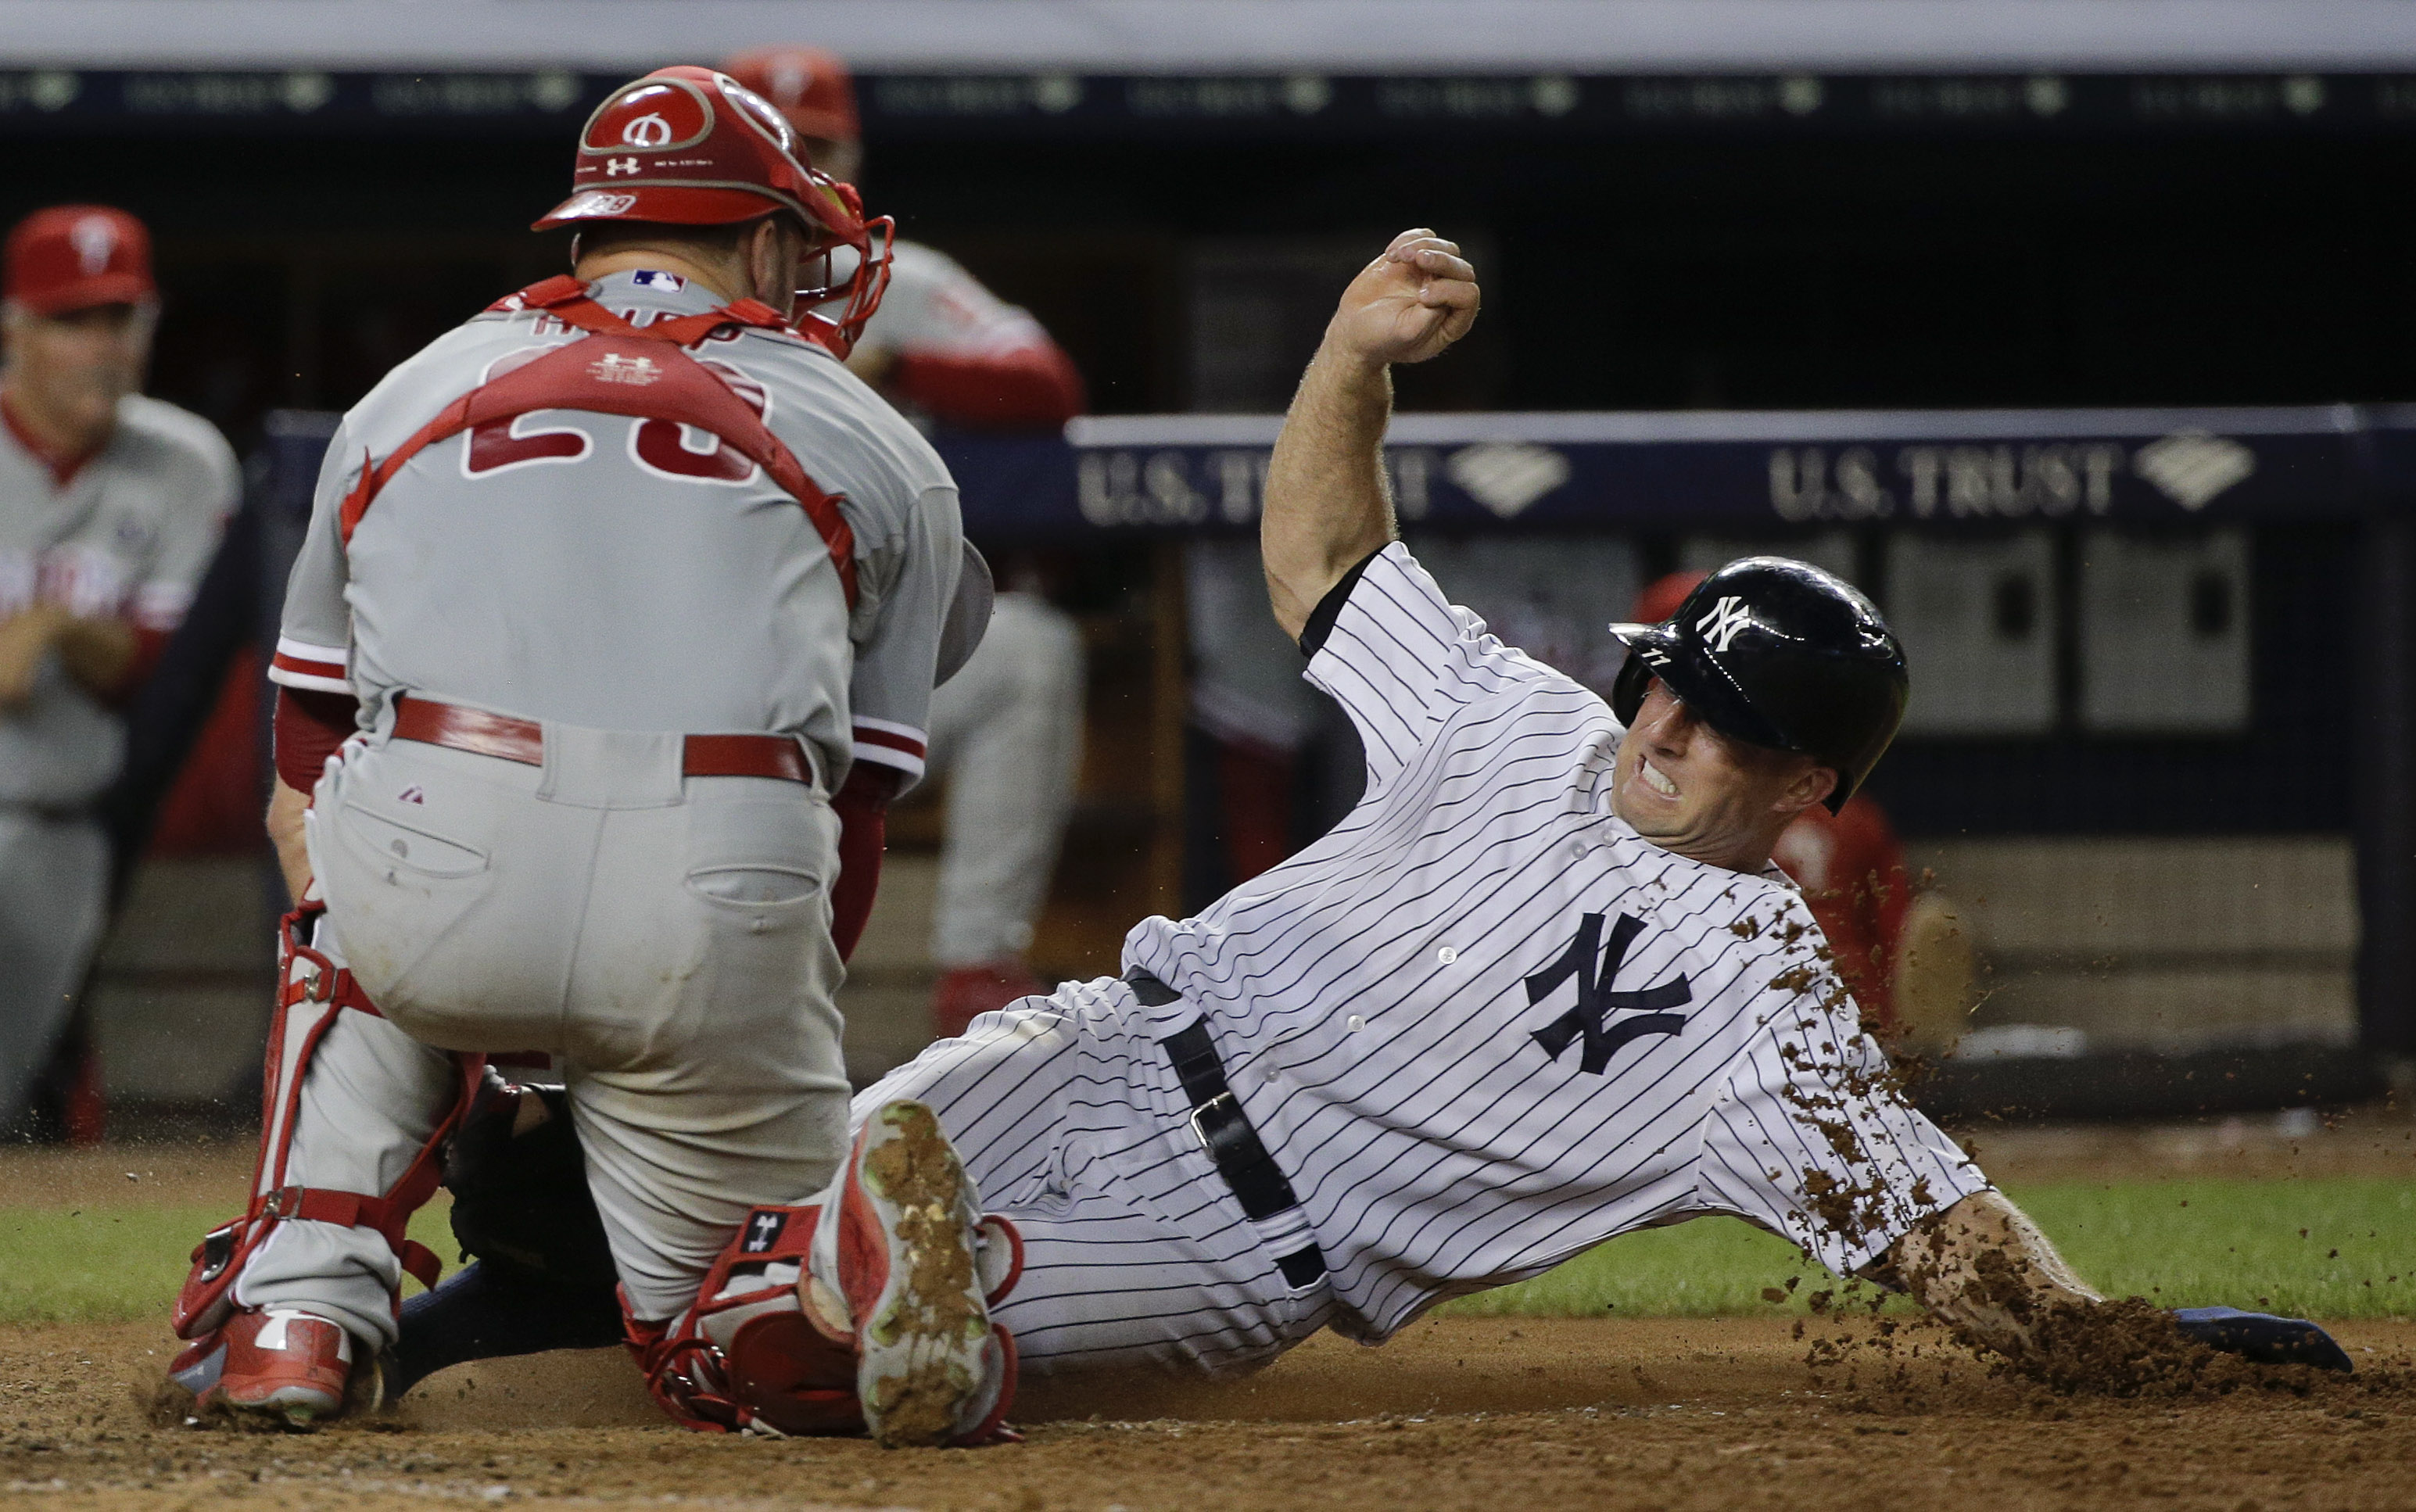 Philadelphia Phillies catcher Cameron Rupp tags out New York Yankees Brett Gardner during the sixth inning of a baseball game, Tuesday, June 23, 2015, in New York. The Phillies won 11-6. (AP Photo/Julie Jacobson)